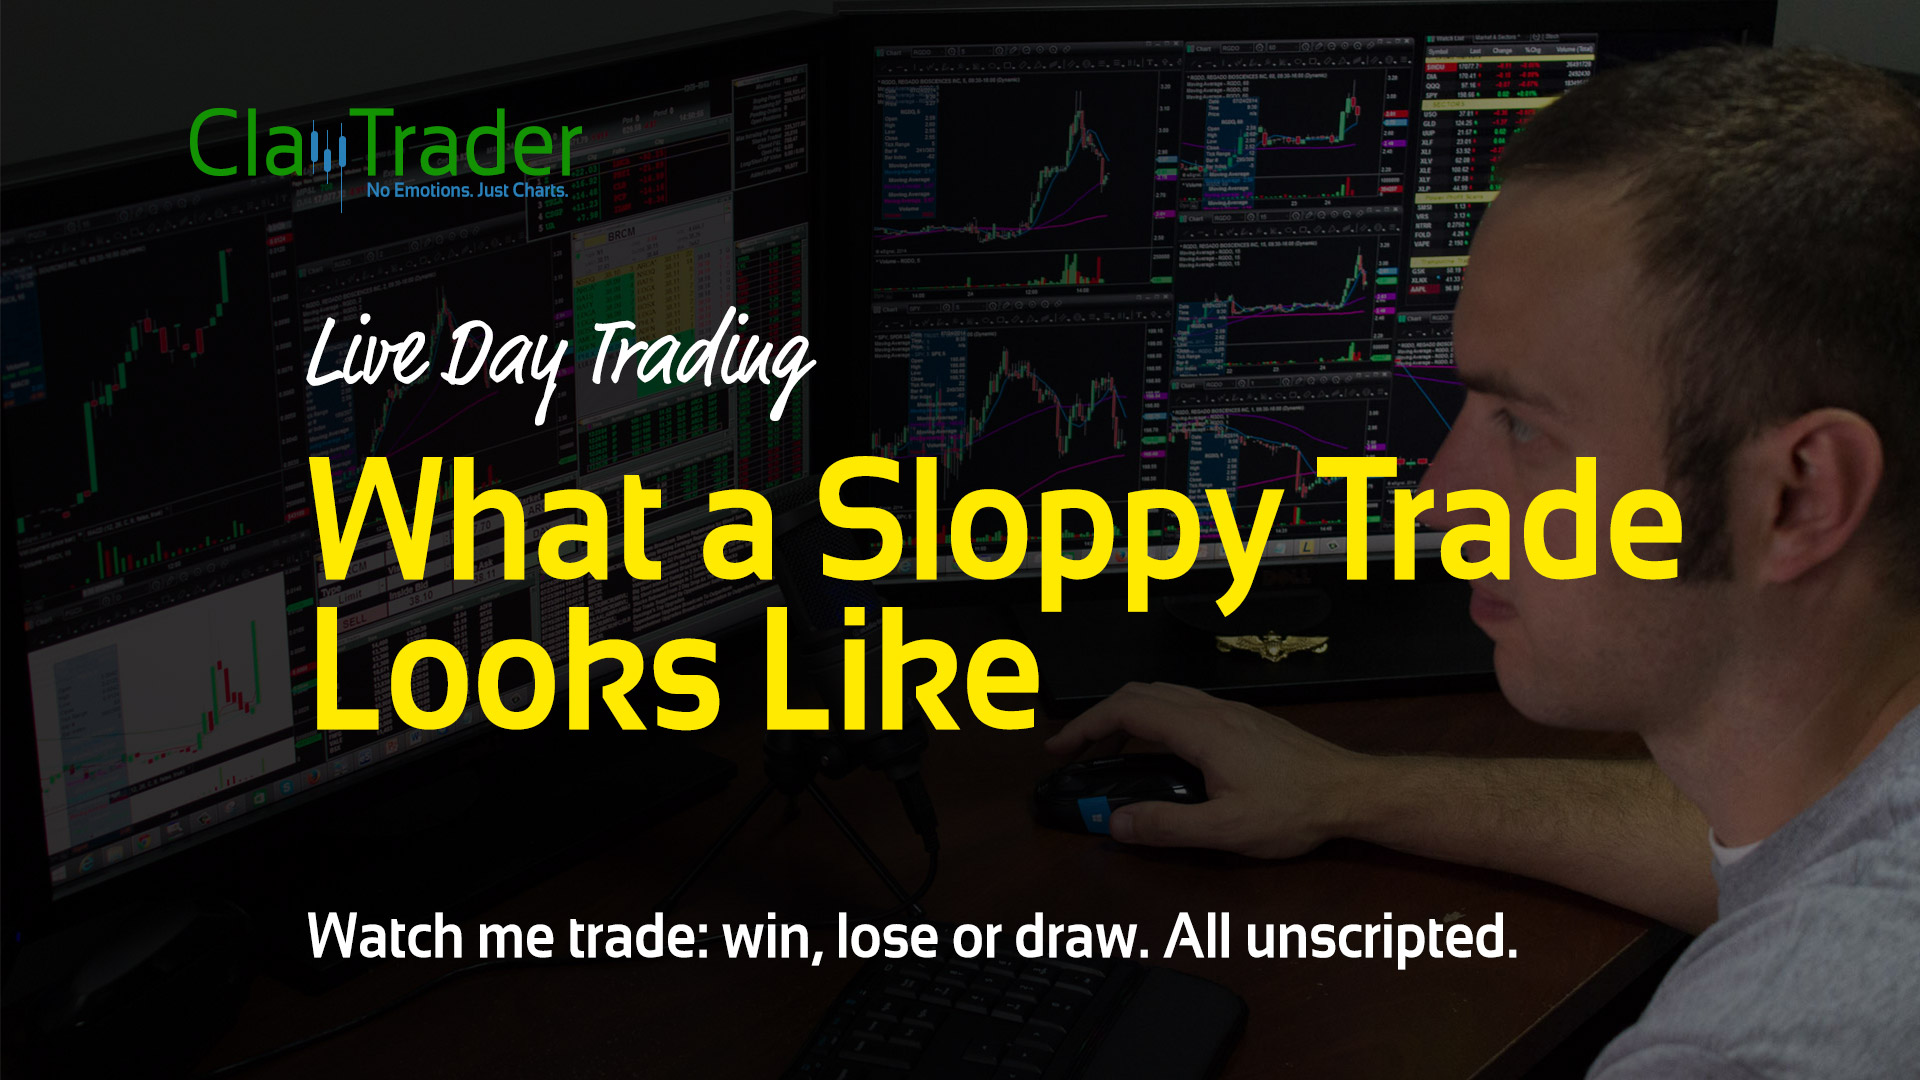 Live Day Trading - What a Sloppy Trade Looks Like